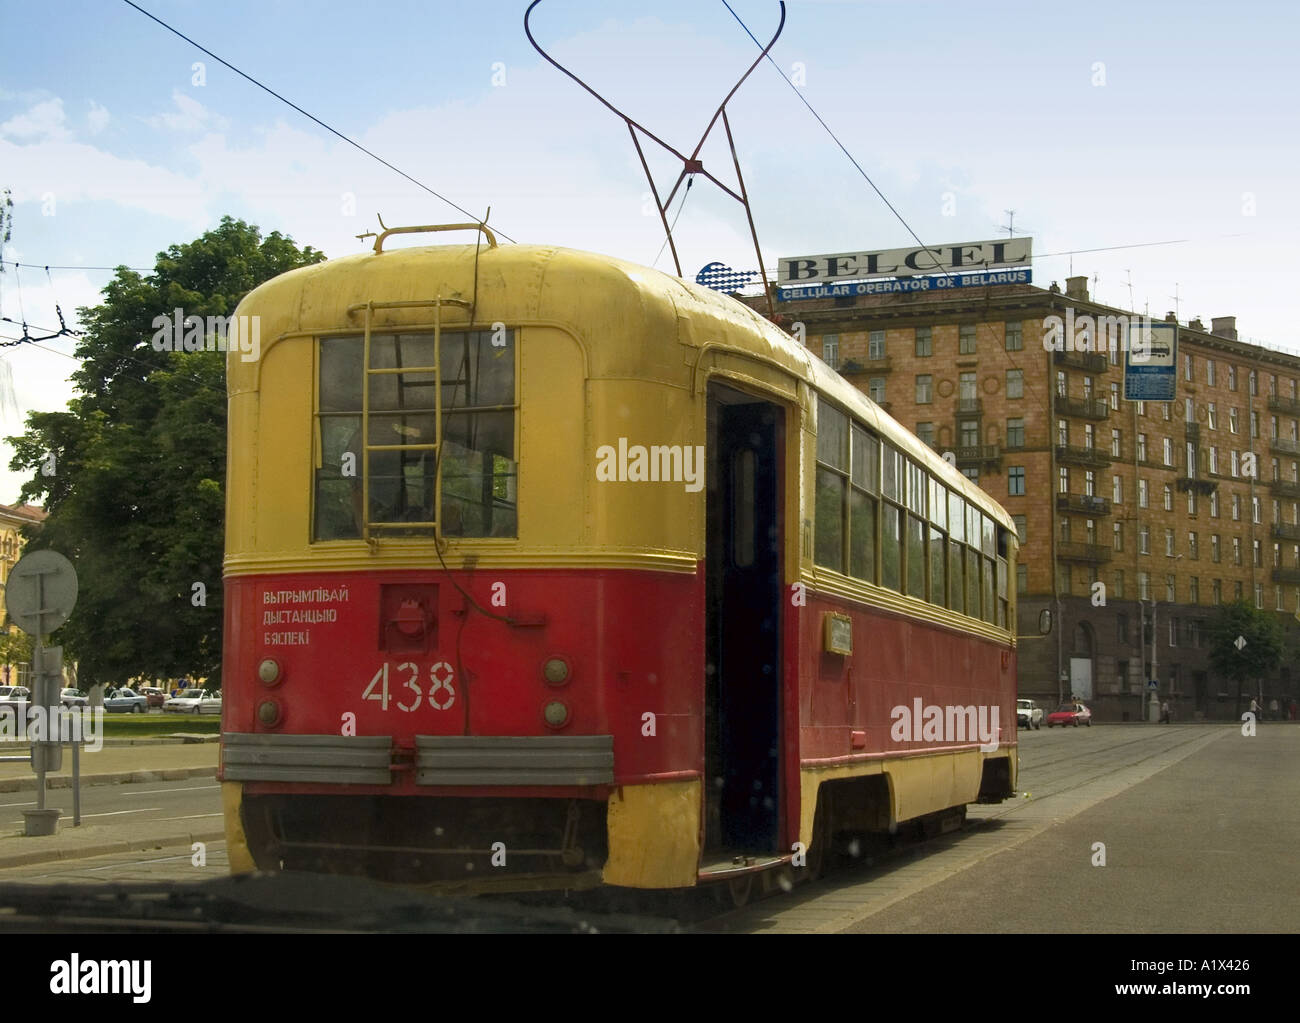 Electric pre-war tram with Fischer bow collector on roof in motion on city street in Minsk capital city of Belarus - Stock Image